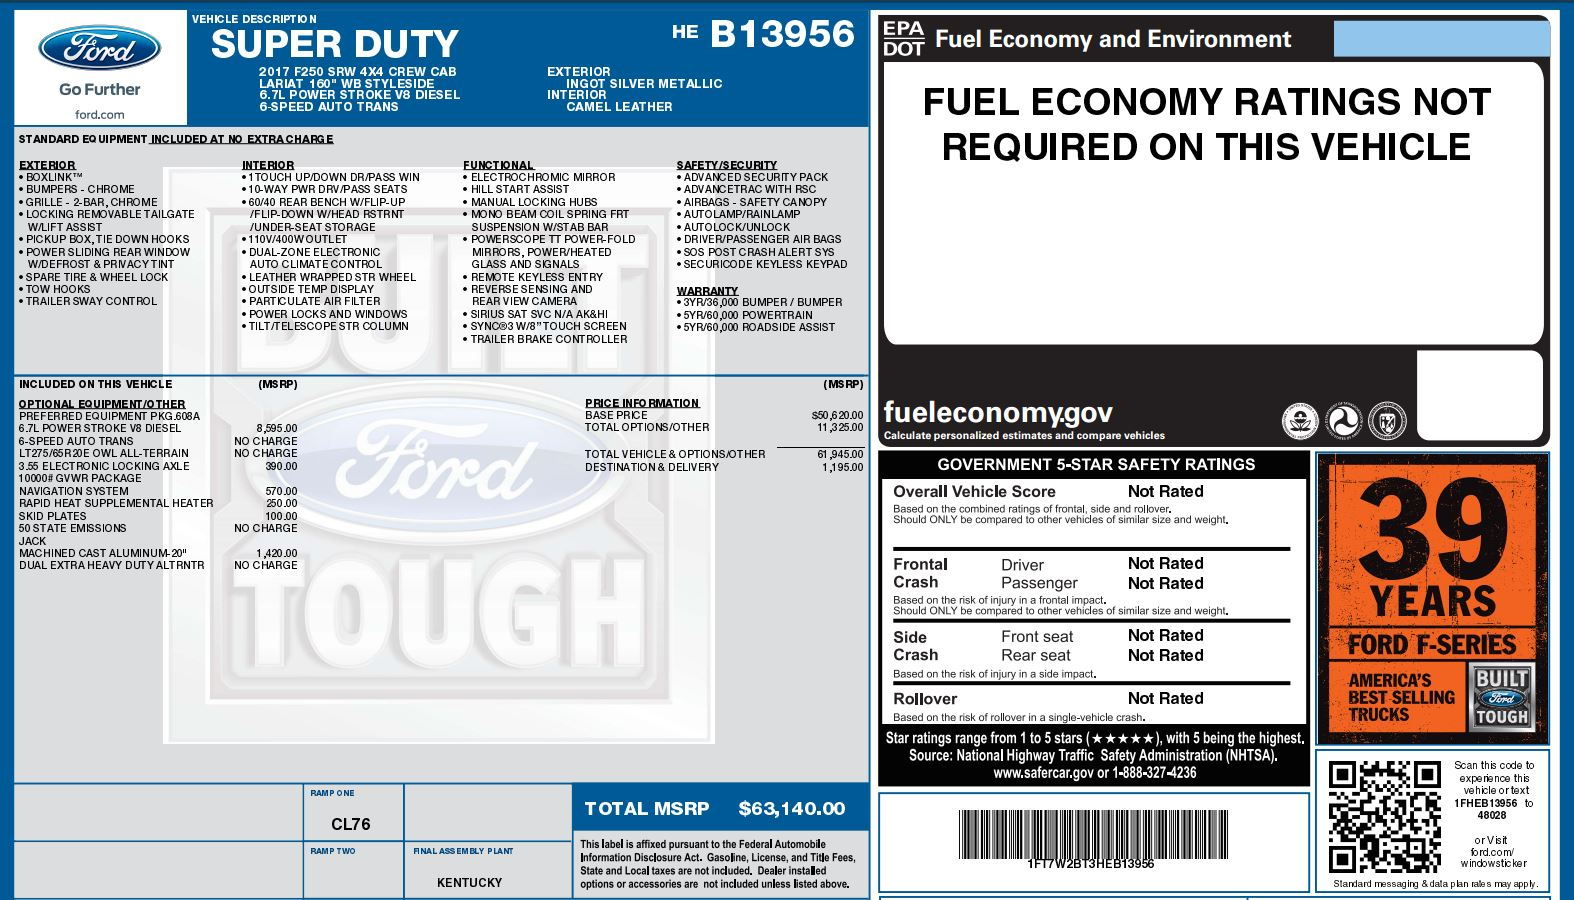 2002 Ford Expedition Fuse Box Panel Diagram together with 1391288 The 6 0 Shake Lost On This One 5 besides 2017 F350 Super Duty Pictures besides John Deere 250 Skid Loader Wiring Diagrams in addition 2015 Ford F 350 Wiring Diagram Car Wiring Diagram. on 2005 f250 fuse box diagram